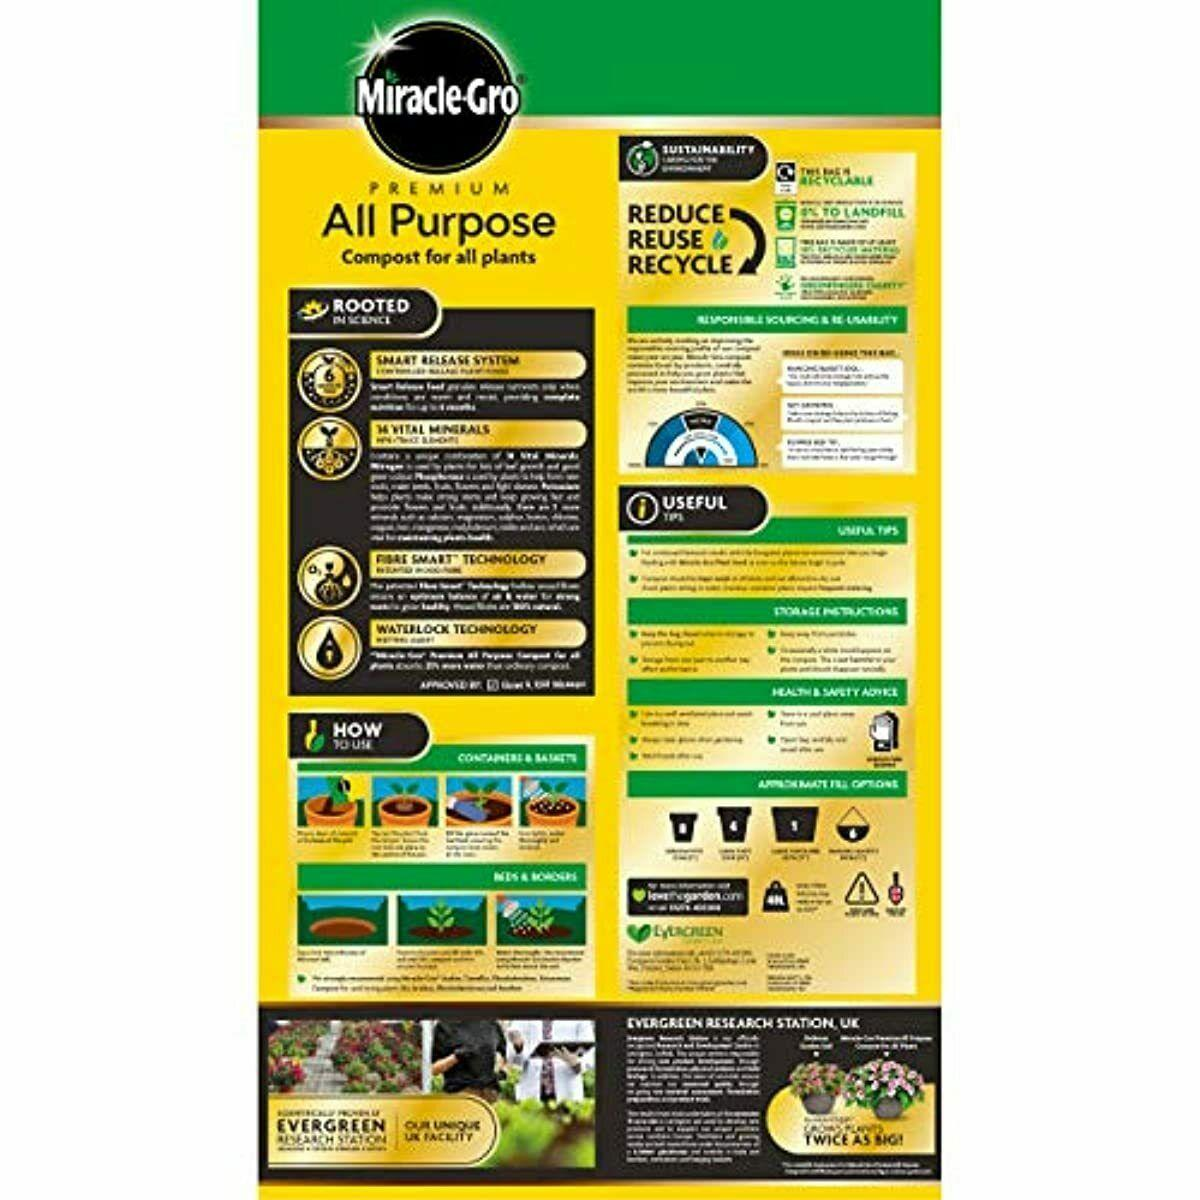 Miracle Gro all purpose compost info